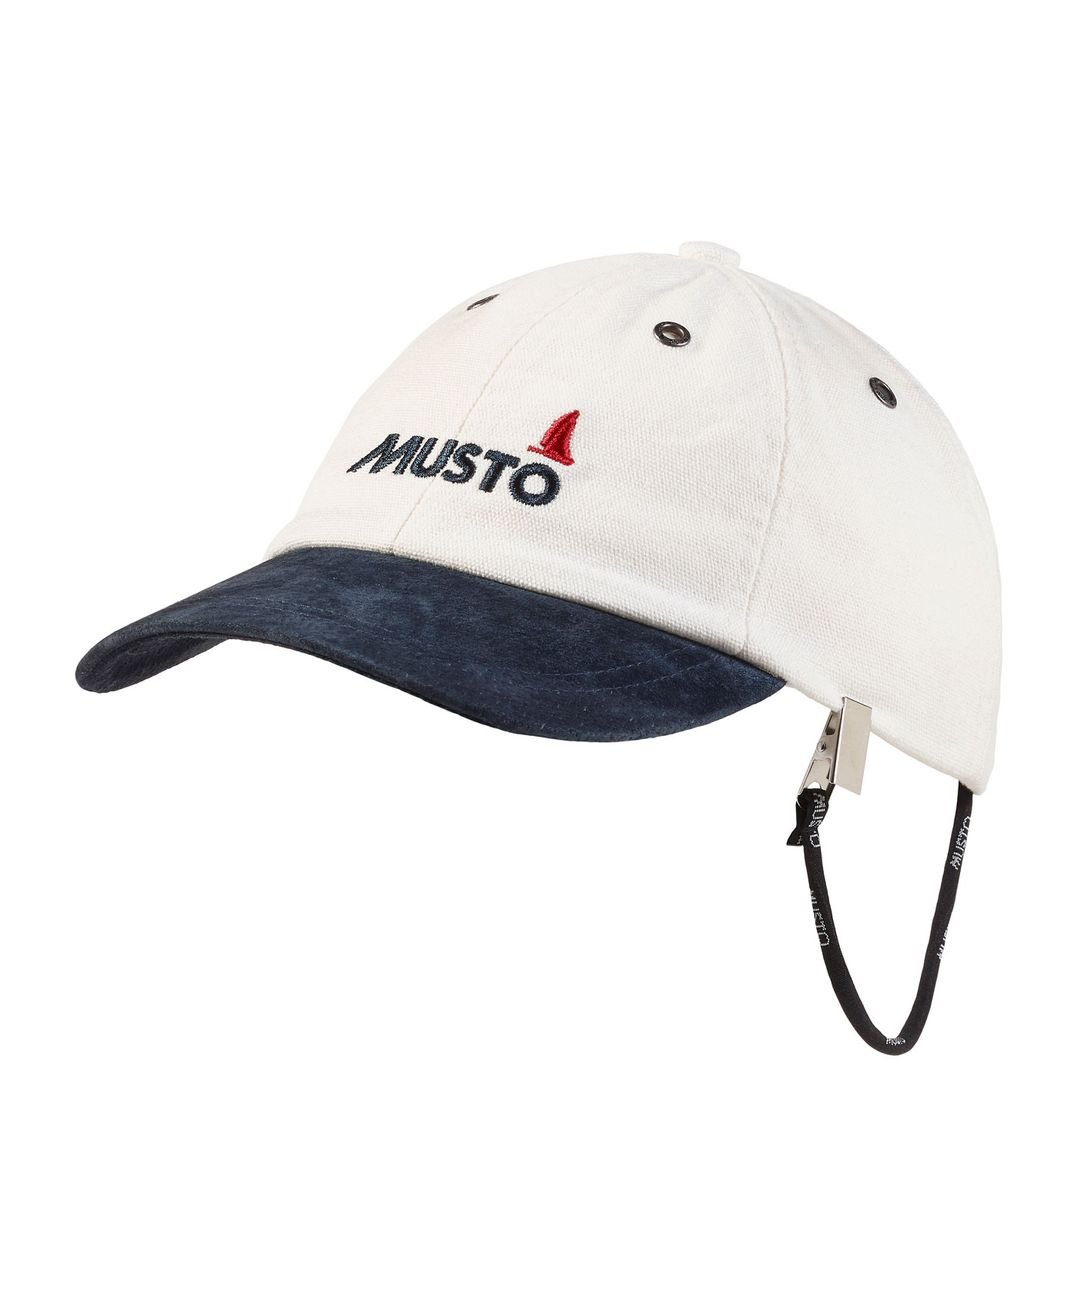 2016 MUSTO Evo Original Crew Cap in Antique Sail White AE0191